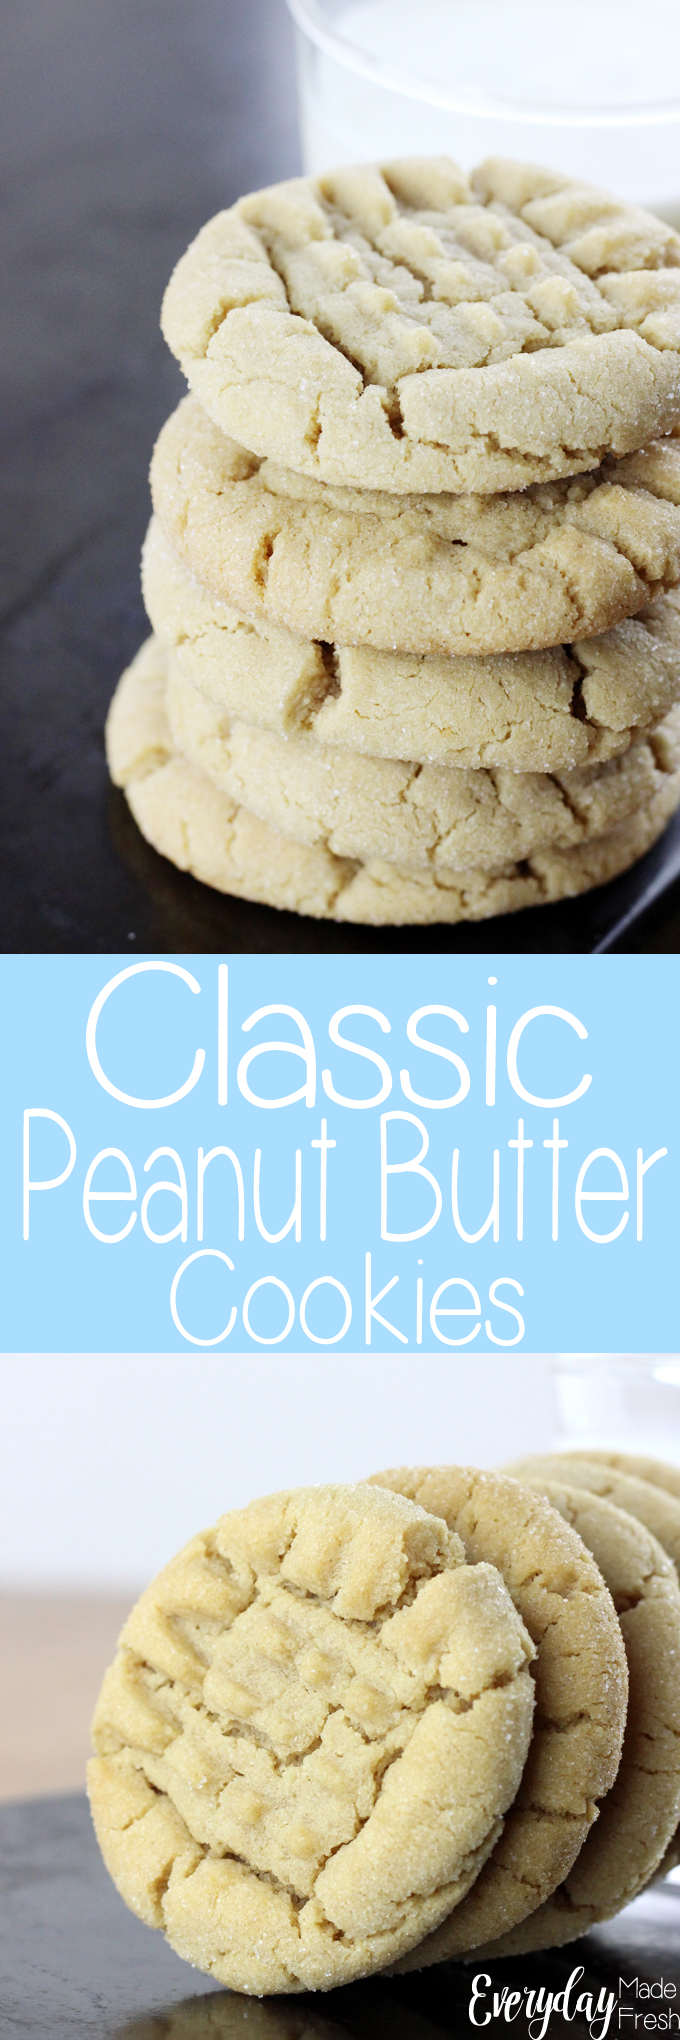 Everyone needs a Classic Peanut Butter Cookie recipe in their collection, and this one is it! Easy to make, tastes great, and your family will love it! | EverydayMadeFresh.com